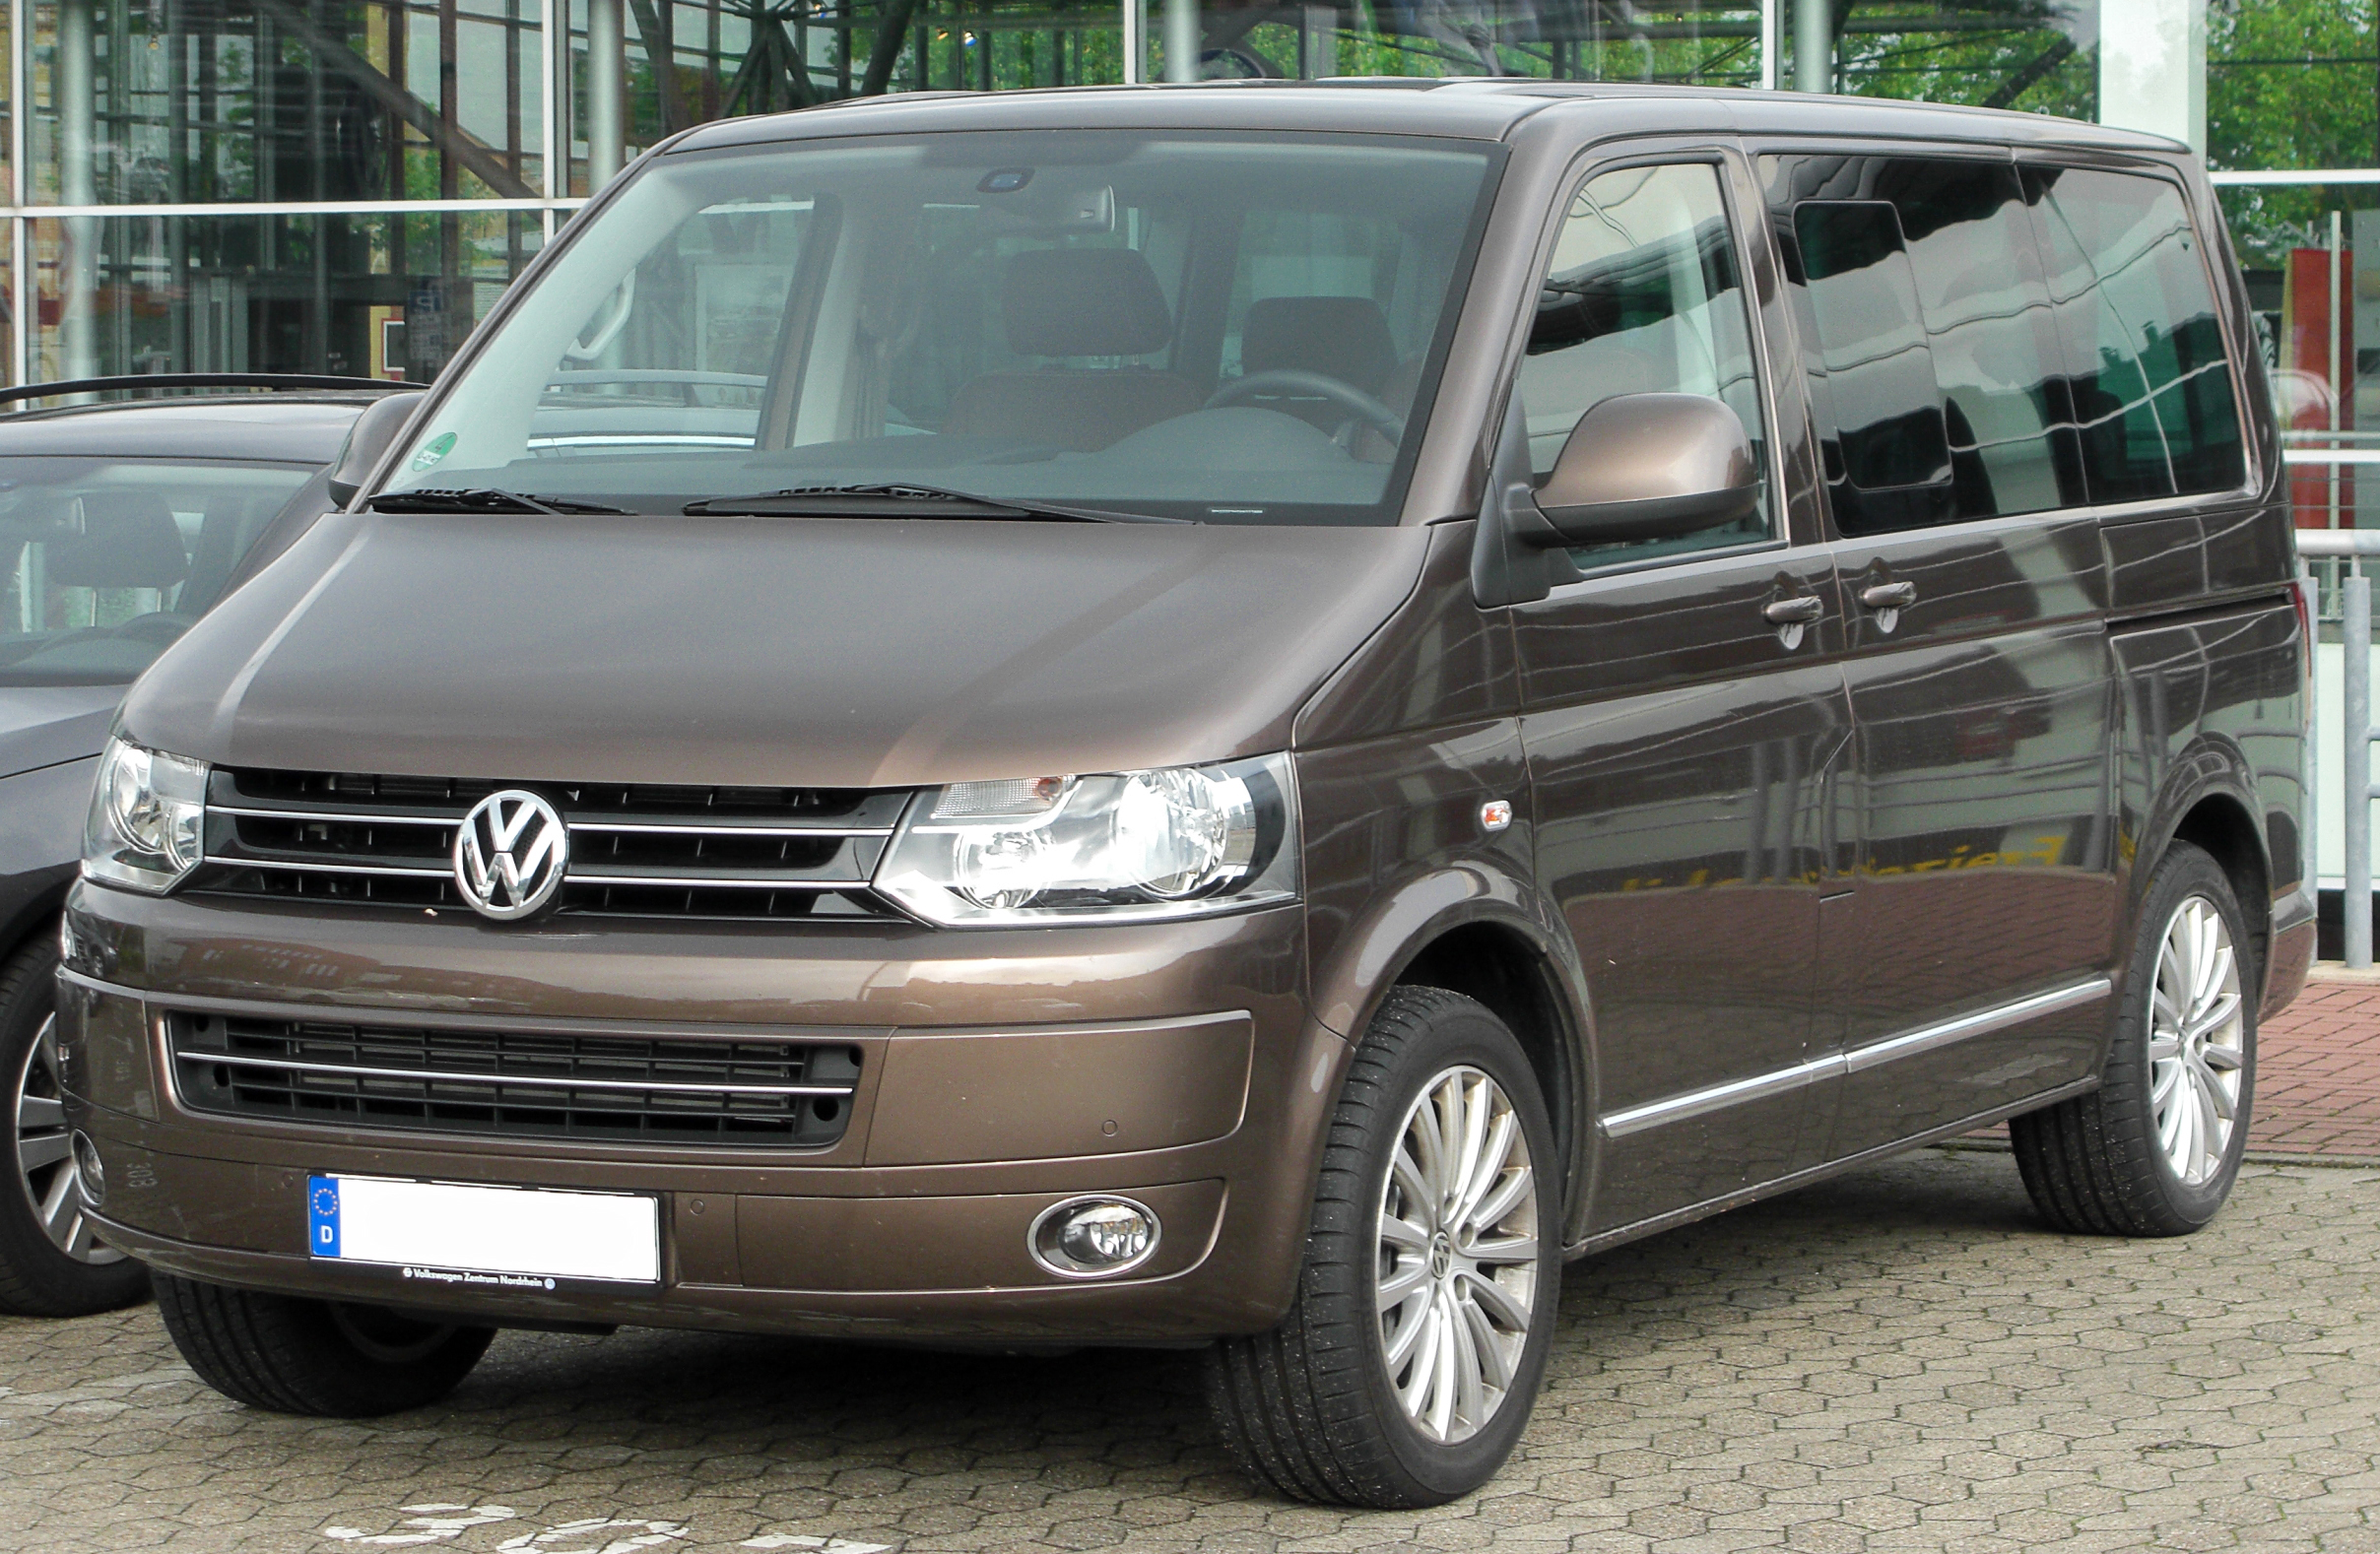 File Vw Multivan Tdi T5 Facelift Front 20100612 Jpg